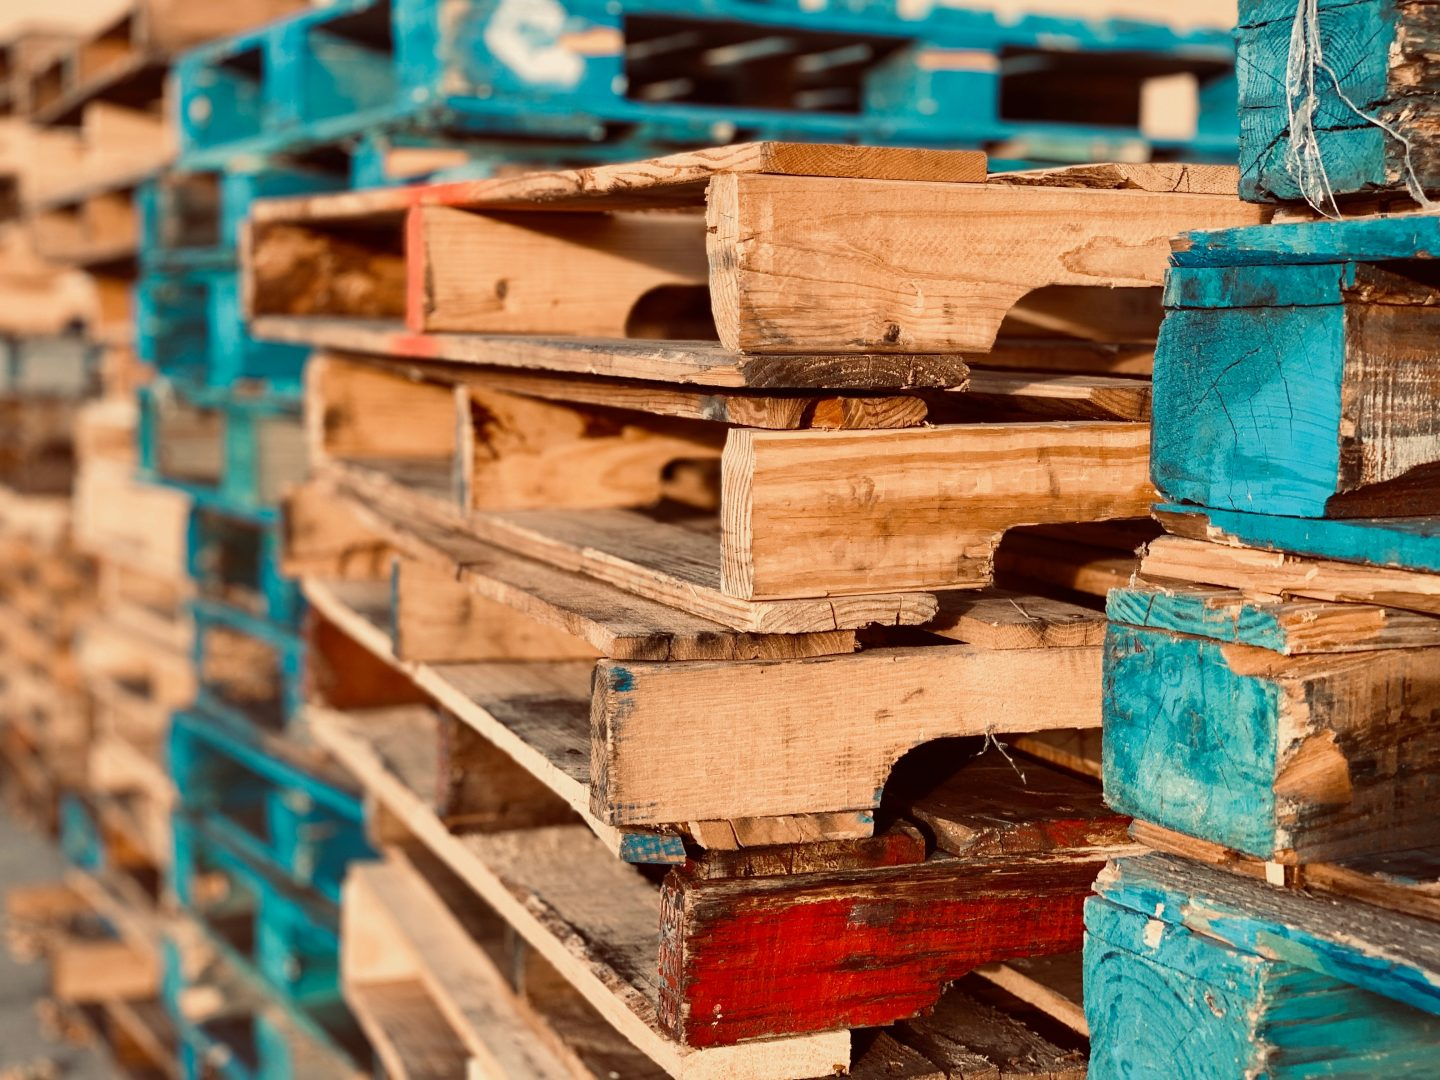 Amazon Pallet Requirements: Important Information